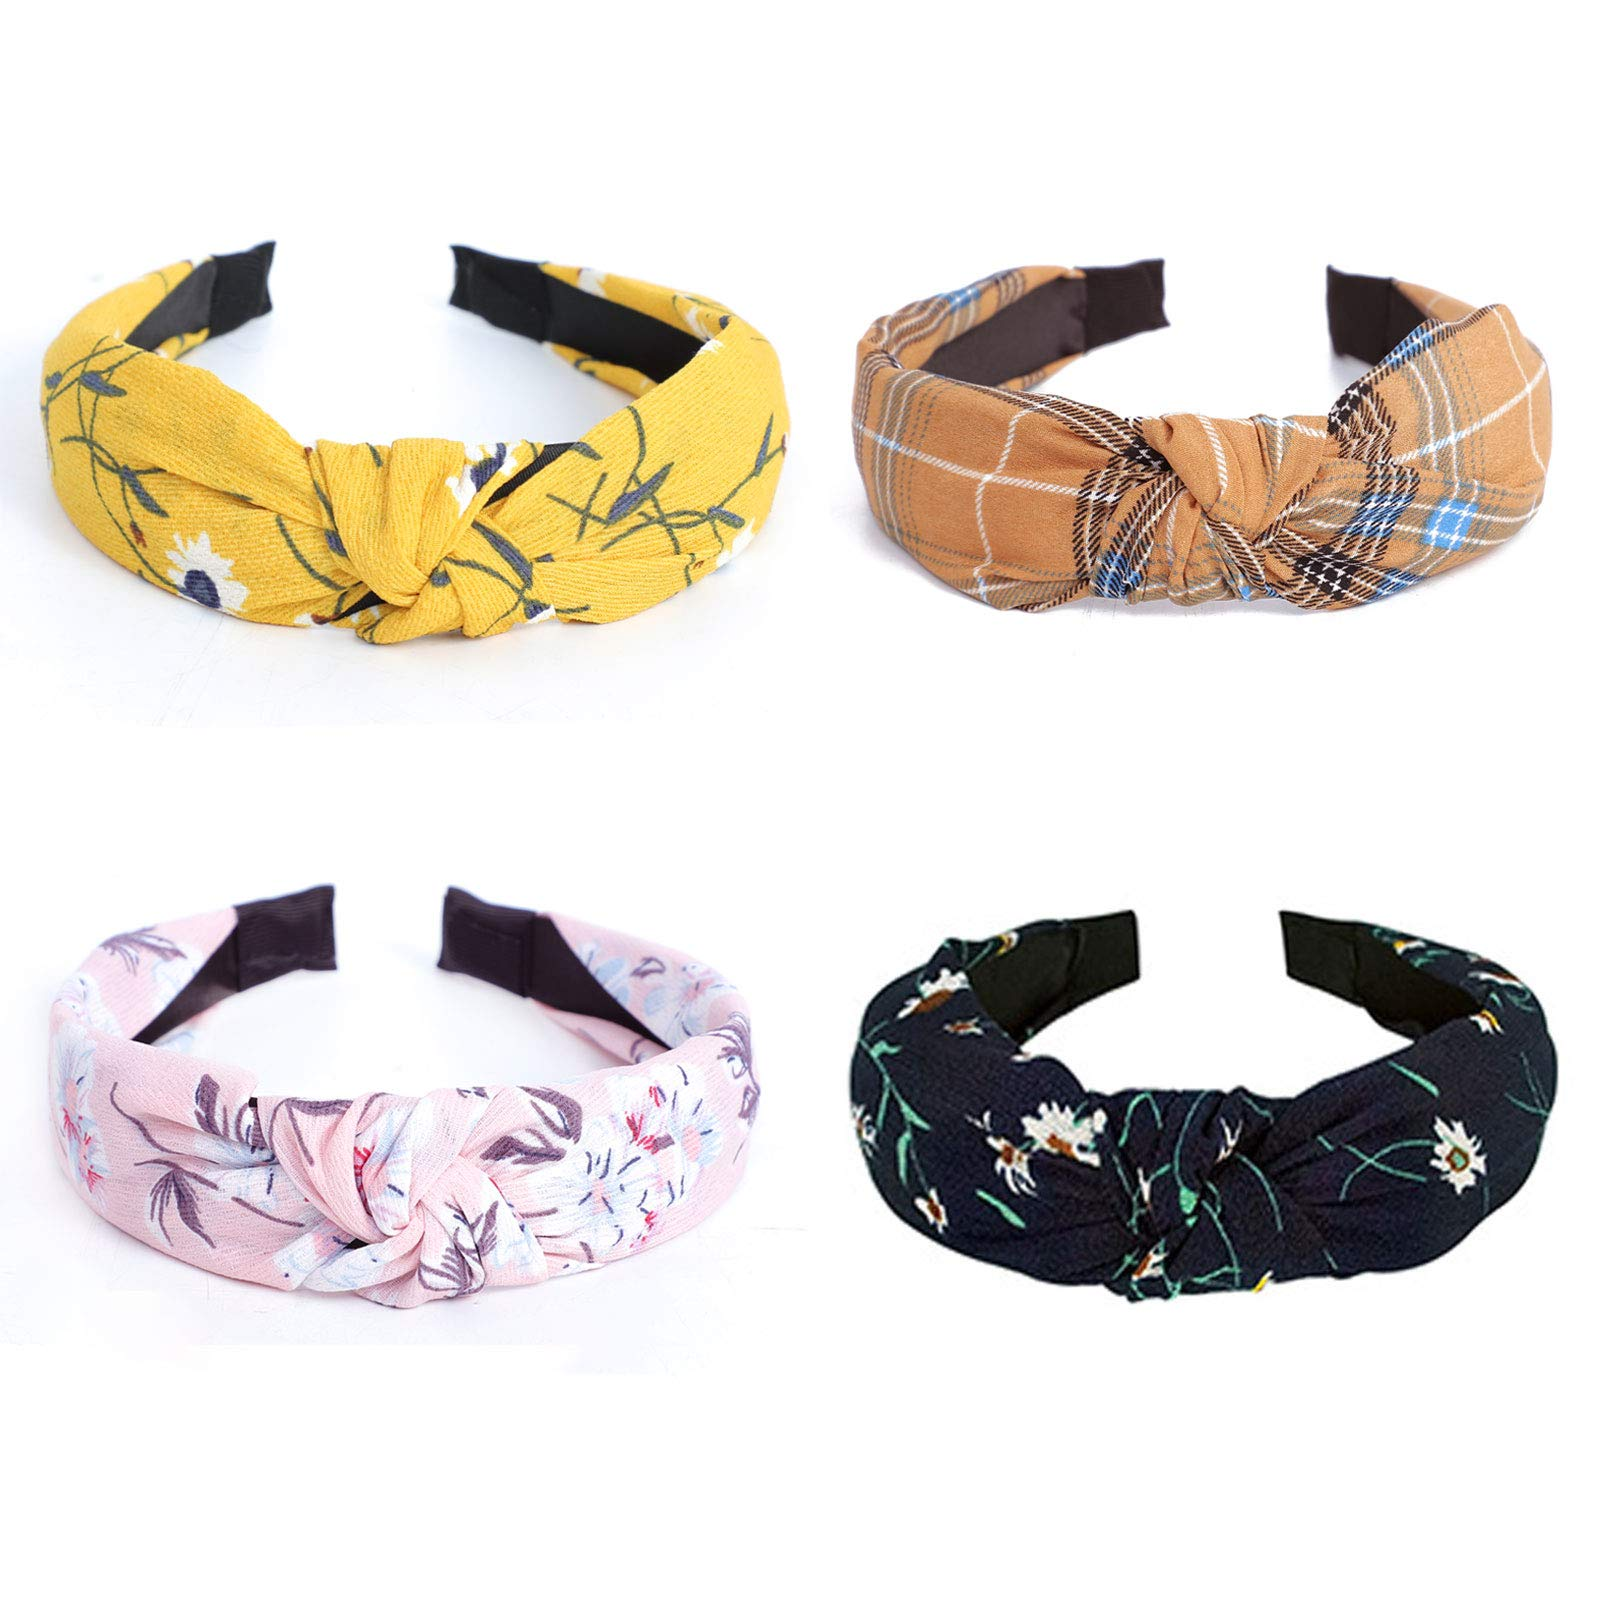 G&T Knotted Headbands for Girls Fashion Headbands for Women Floral Hair Bands Twist Boho Headbands Cute Hair Hoops Hair Accessories for Washing Face (4 Pcs)